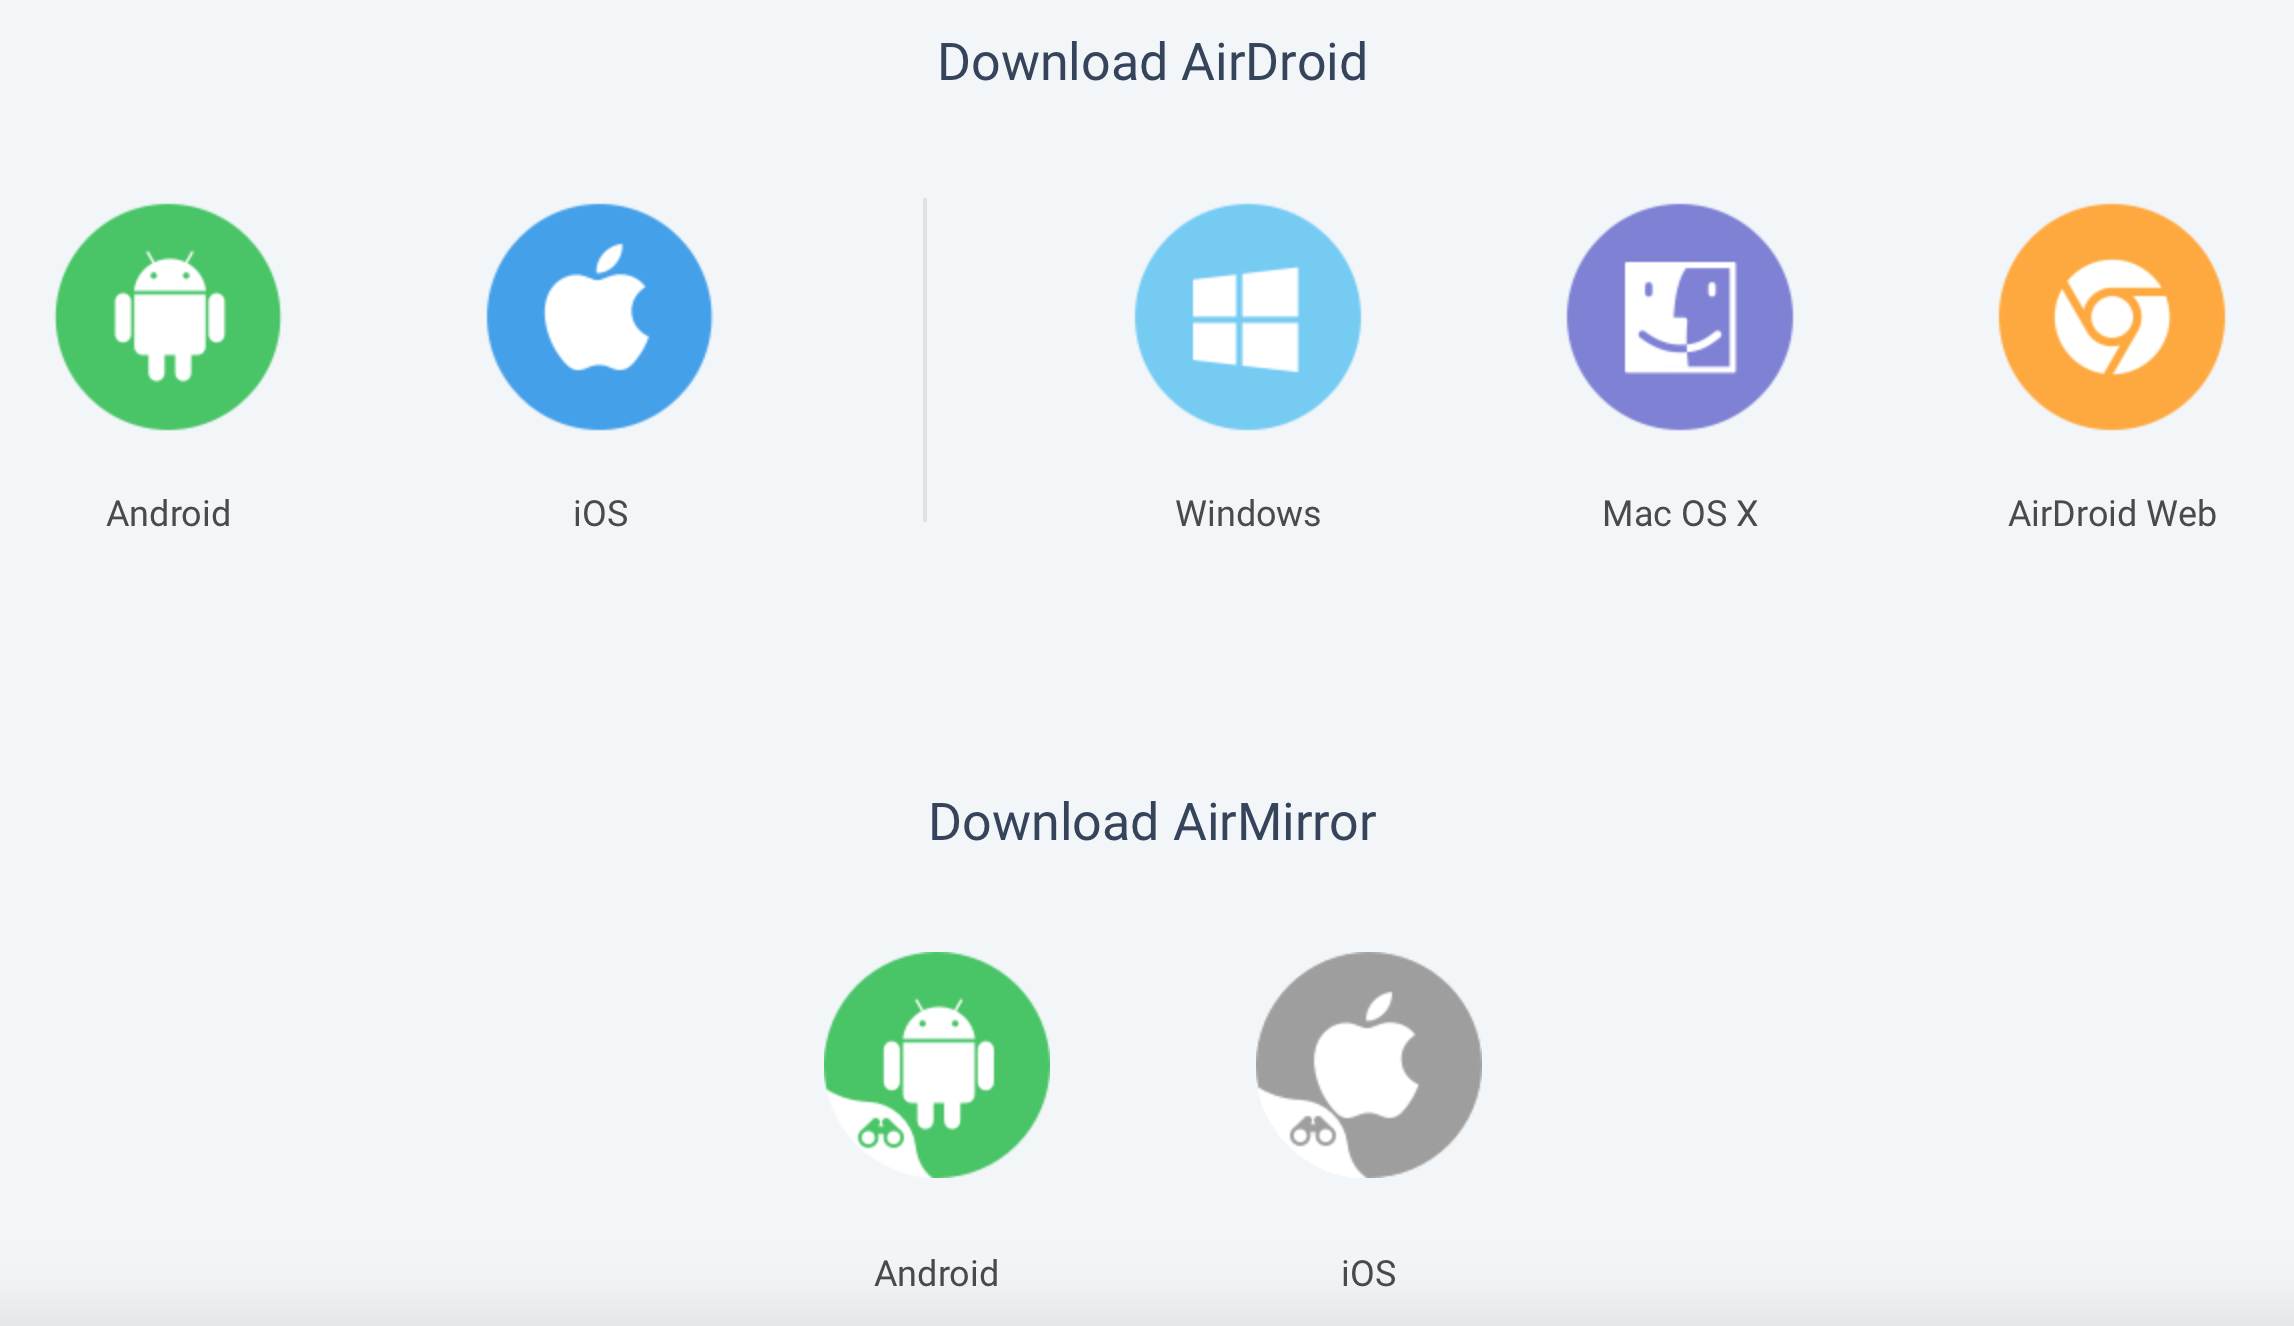 AirDroid-Download-Page